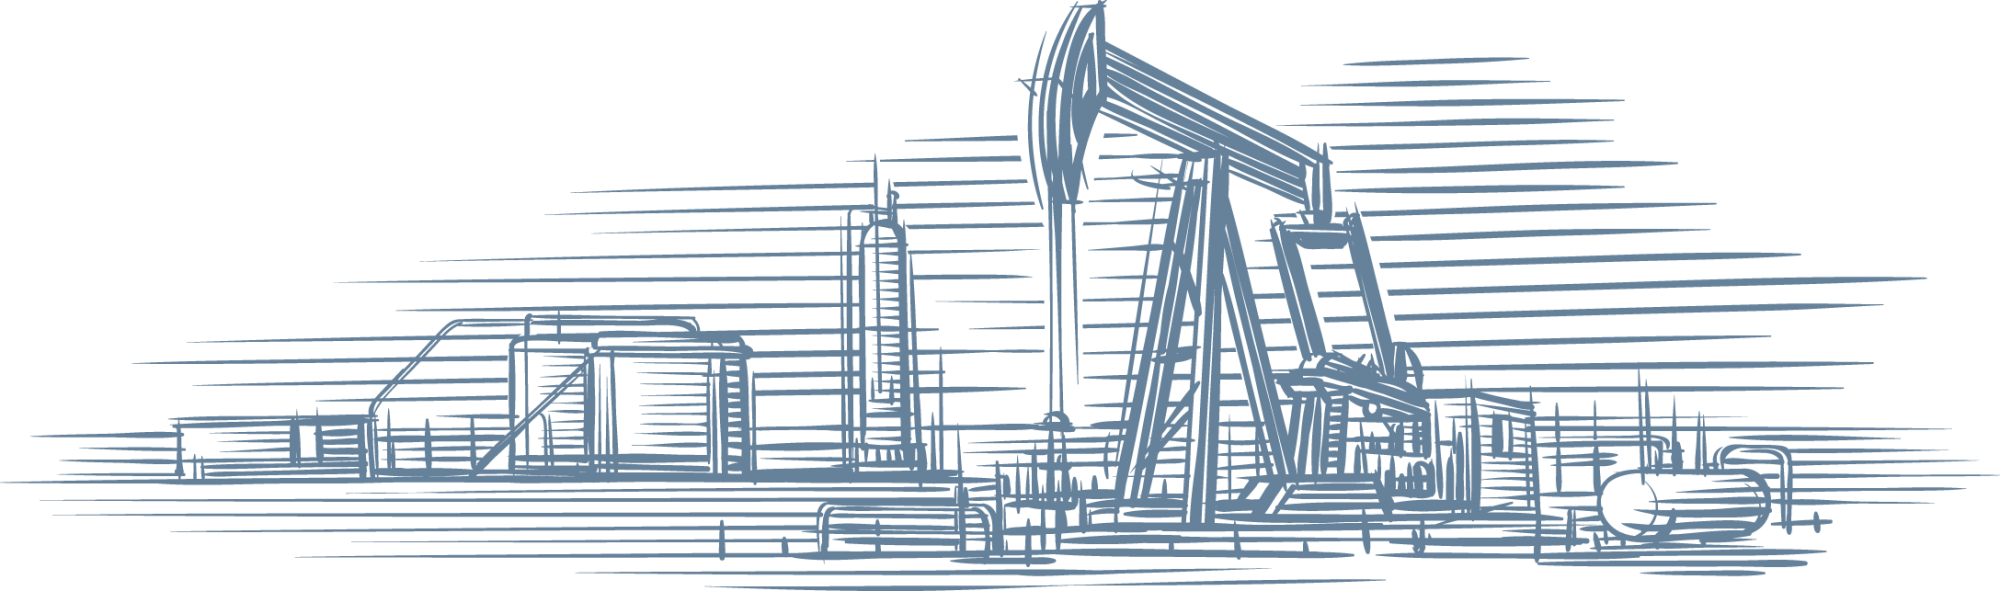 Illustration of a pump jack and well site.